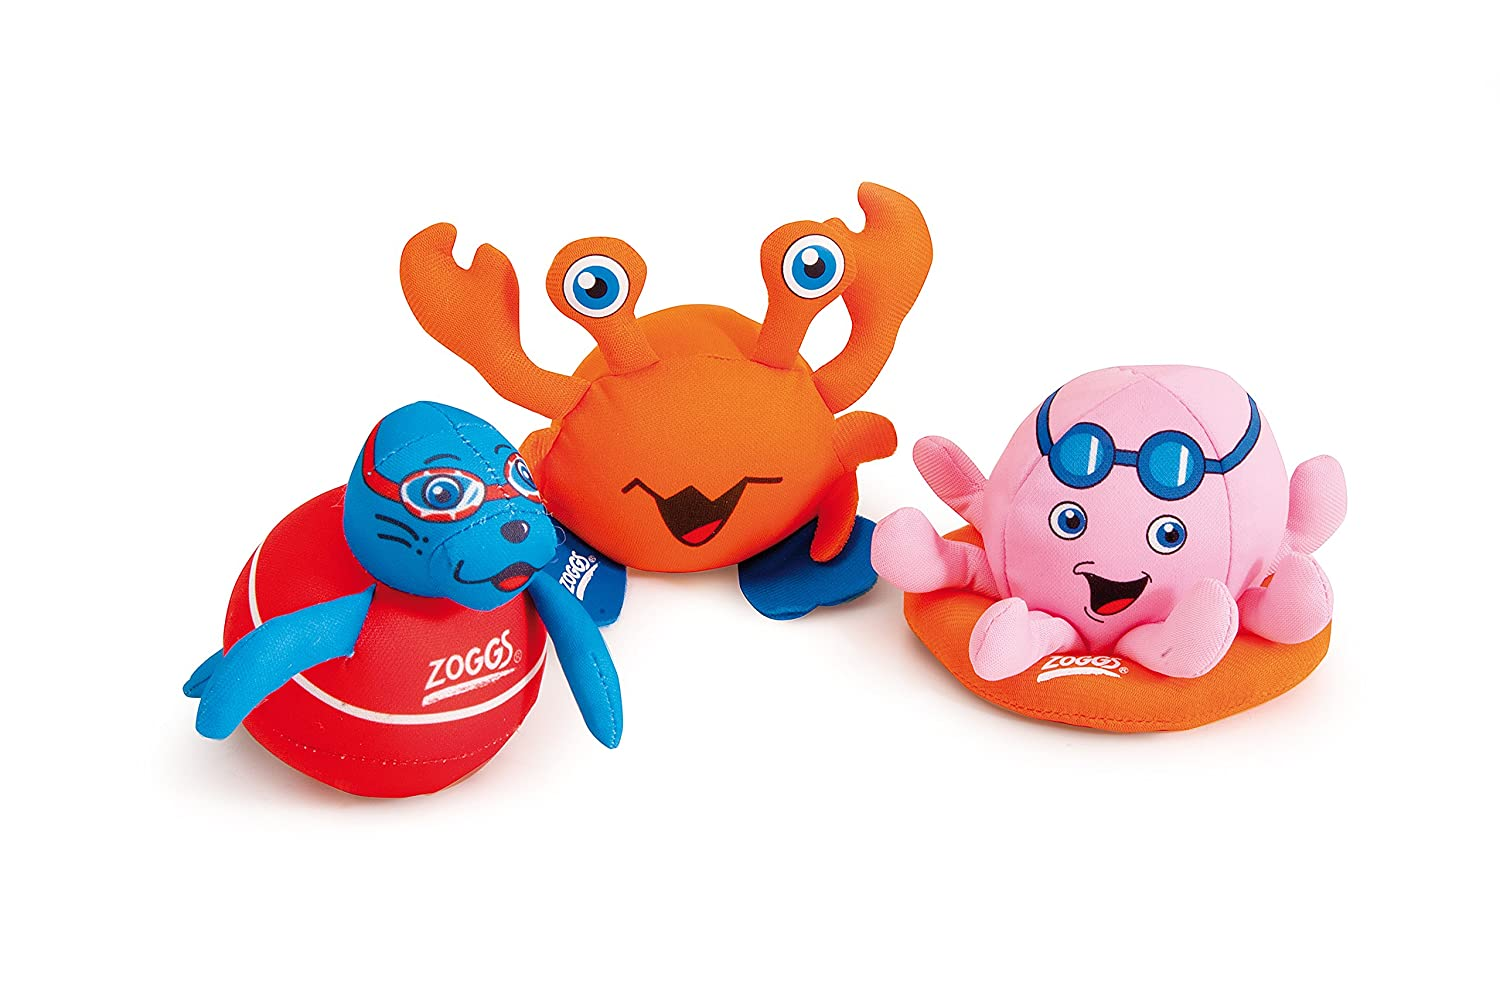 Zoggs Kid's Zoggy Soakers Sponge Toys - Multicolour by Zoggs